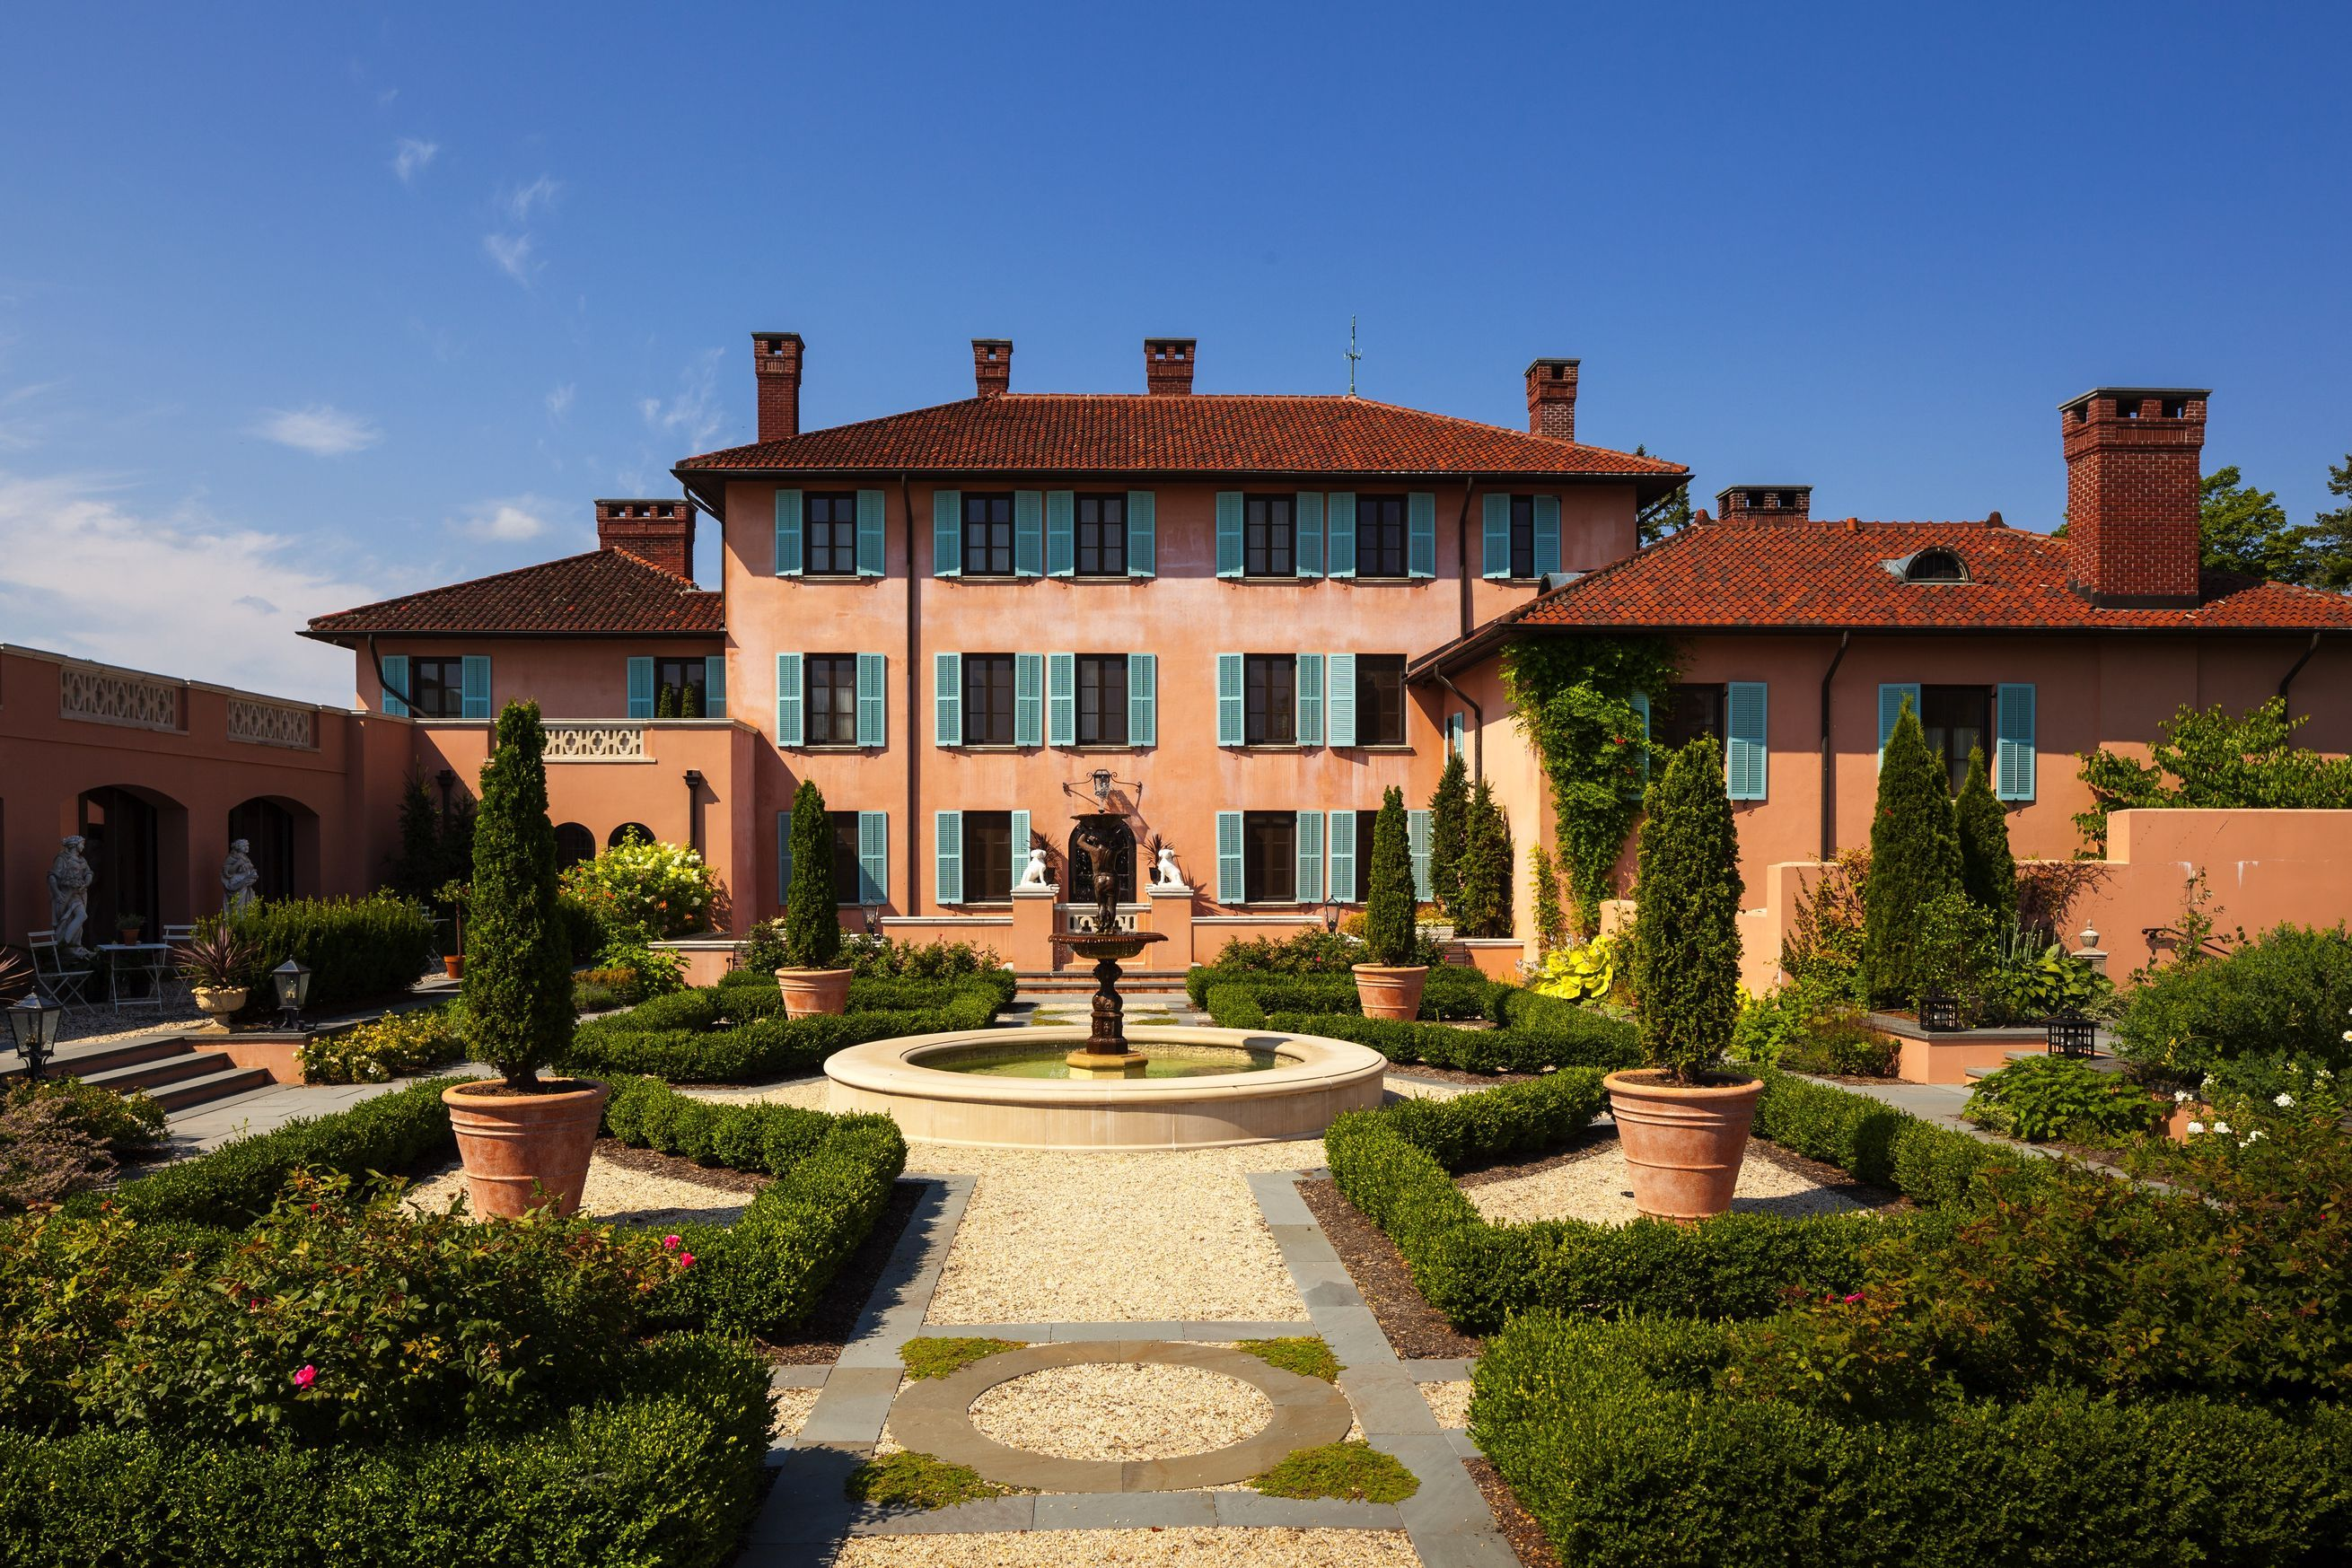 How two neglected mansions became leading luxury hotels